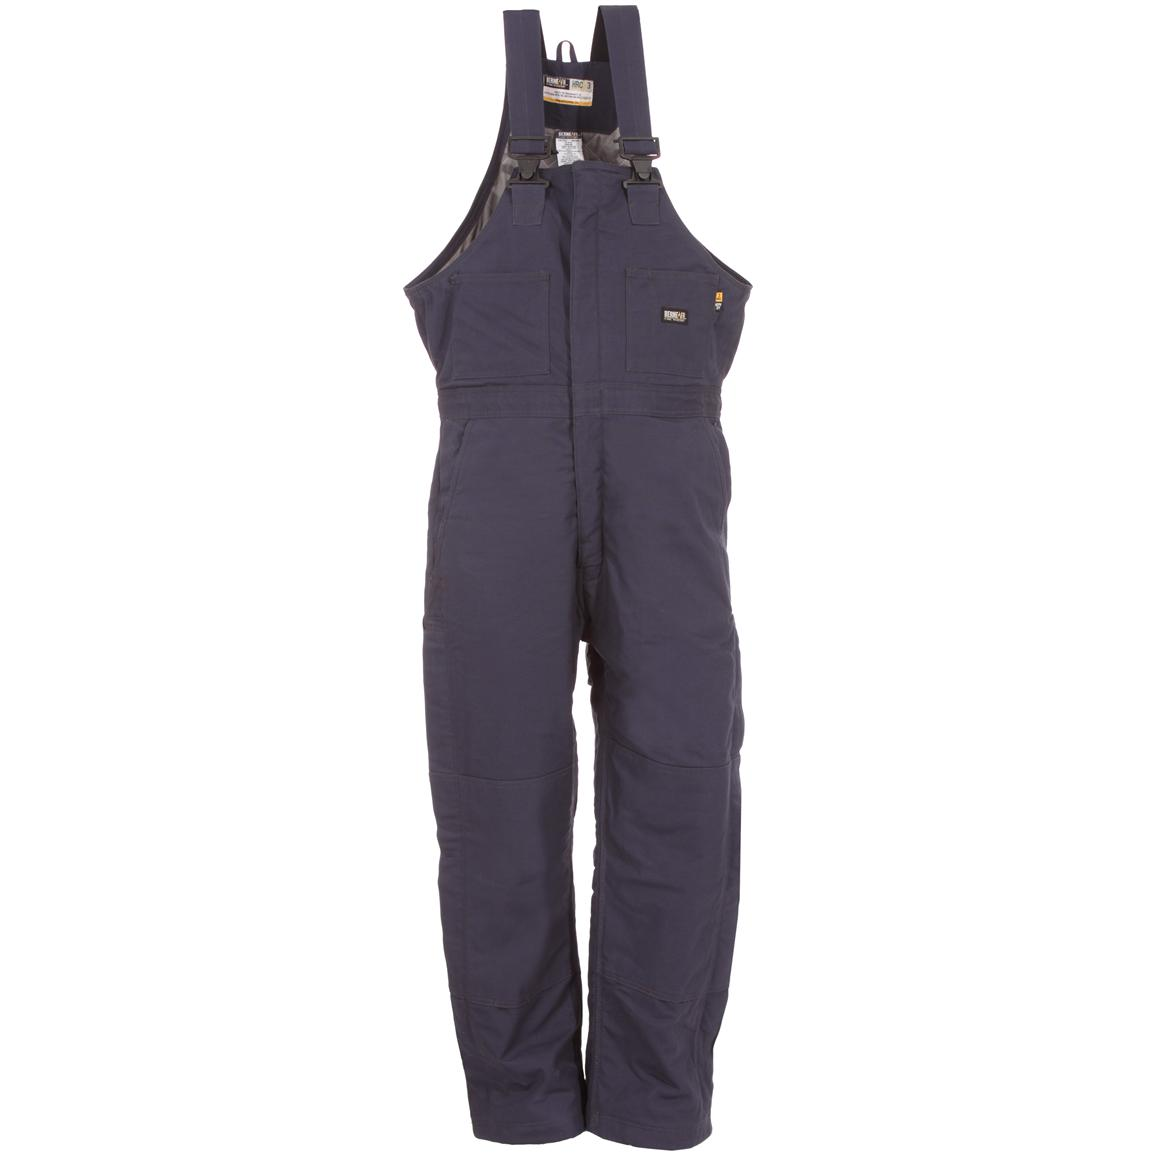 Berne® Flame-resistant Insulated Bib Overalls, Navy